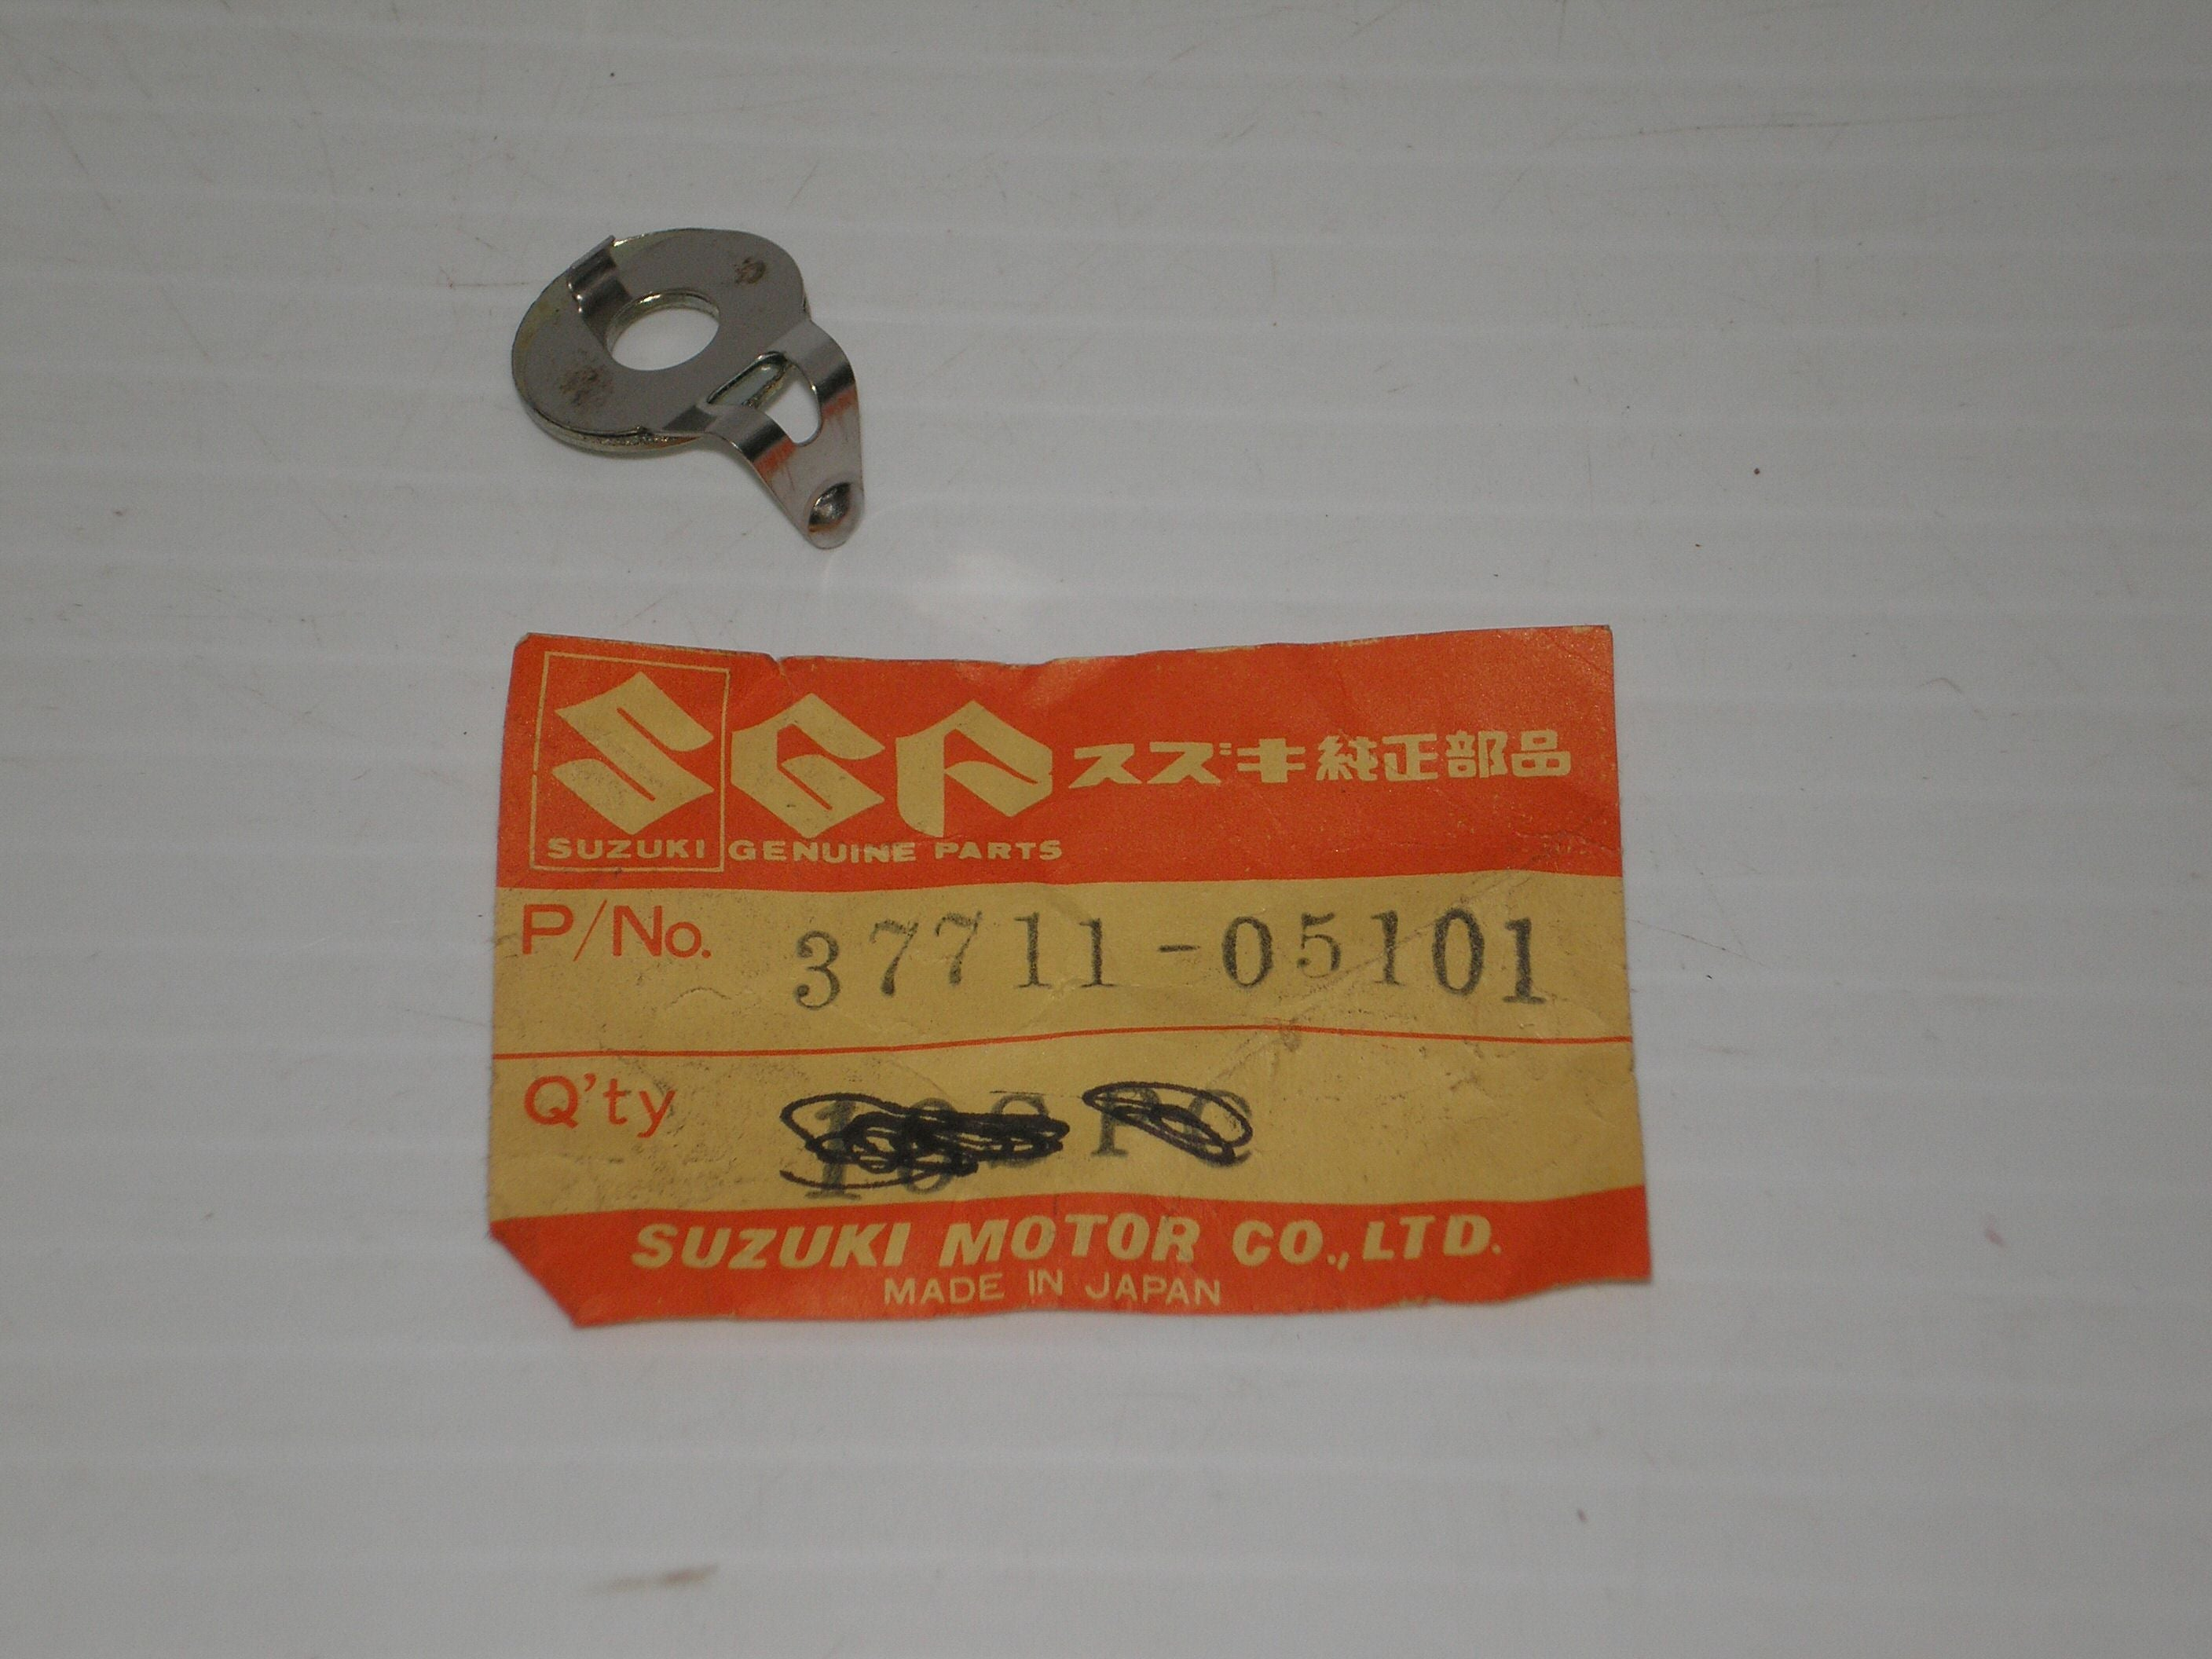 SUZUKI A100 AS50 RV90 TC100 GT T 125 250 350 500 550 750 Switch Contact  Point 37711-05101